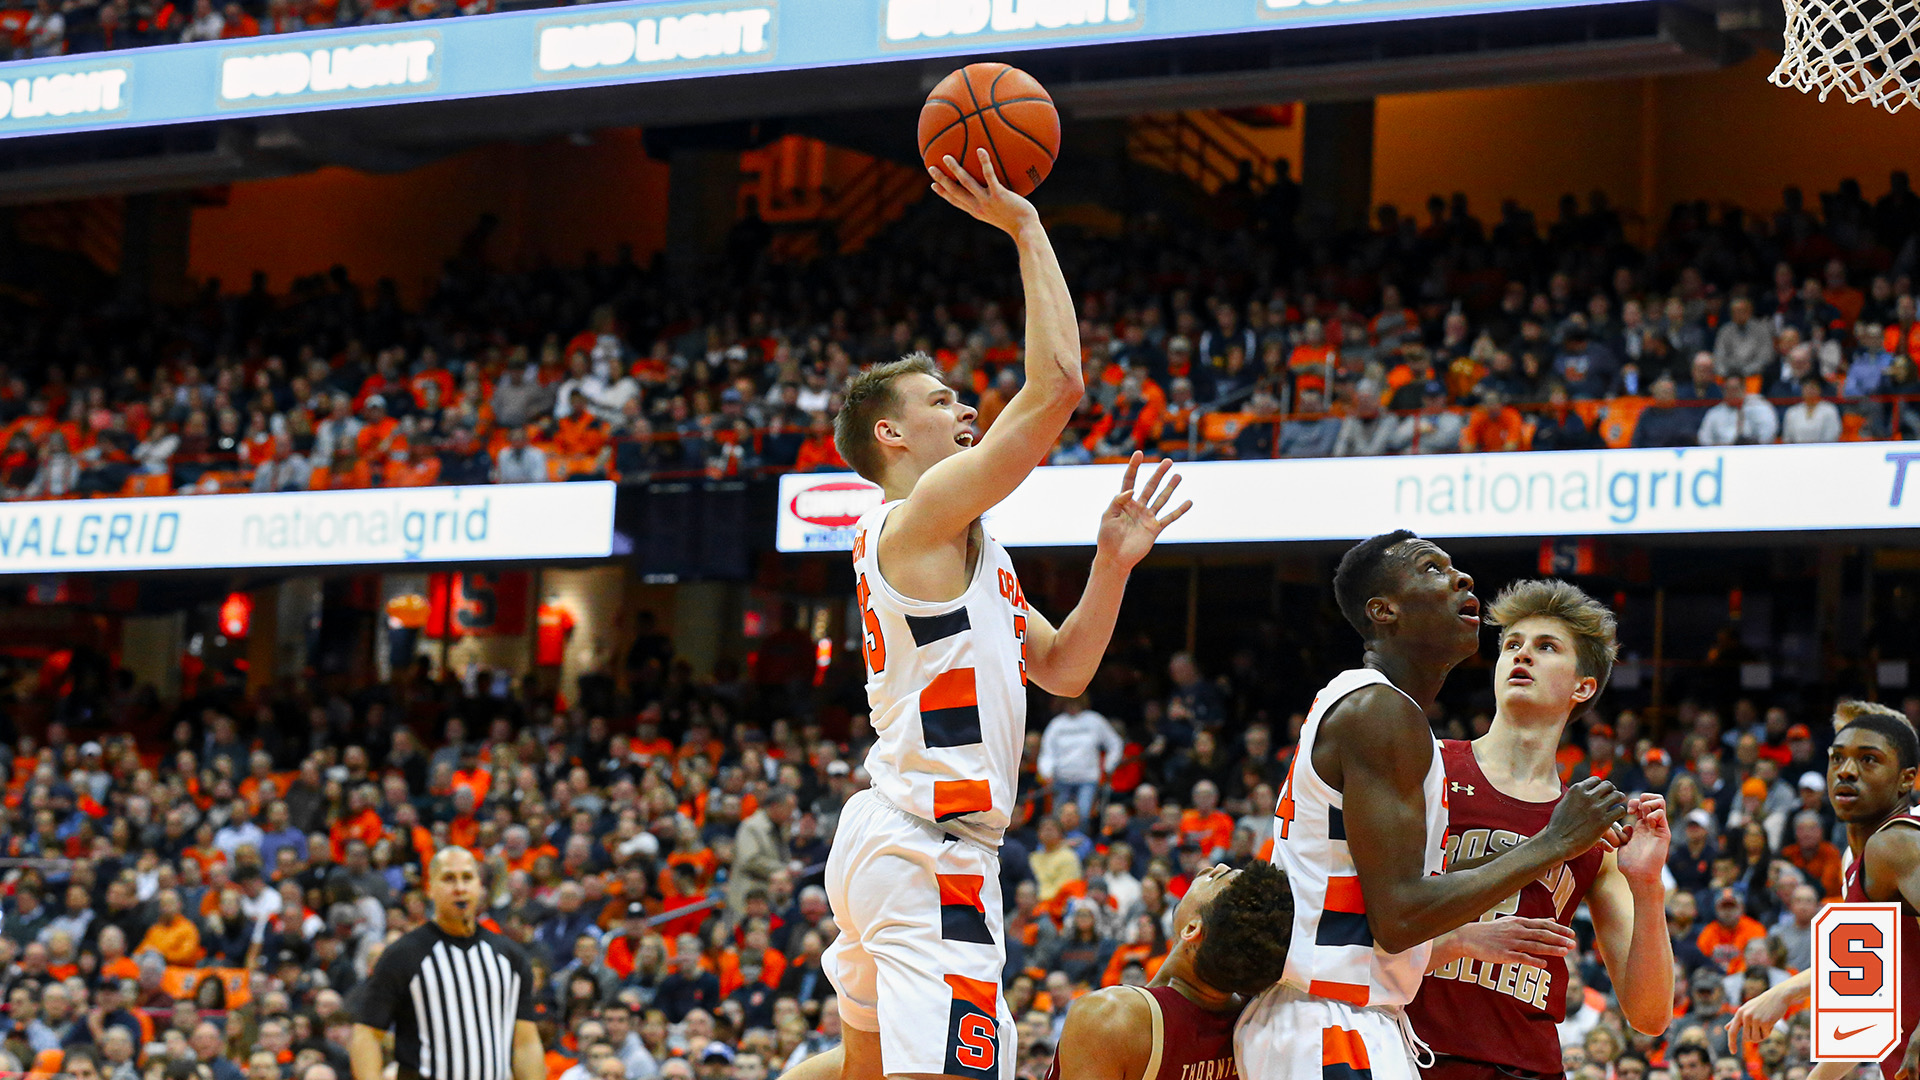 ORANGE GAME DAY: Syracuse takes on Boston College at Carrier Dome tonight (preview & info)